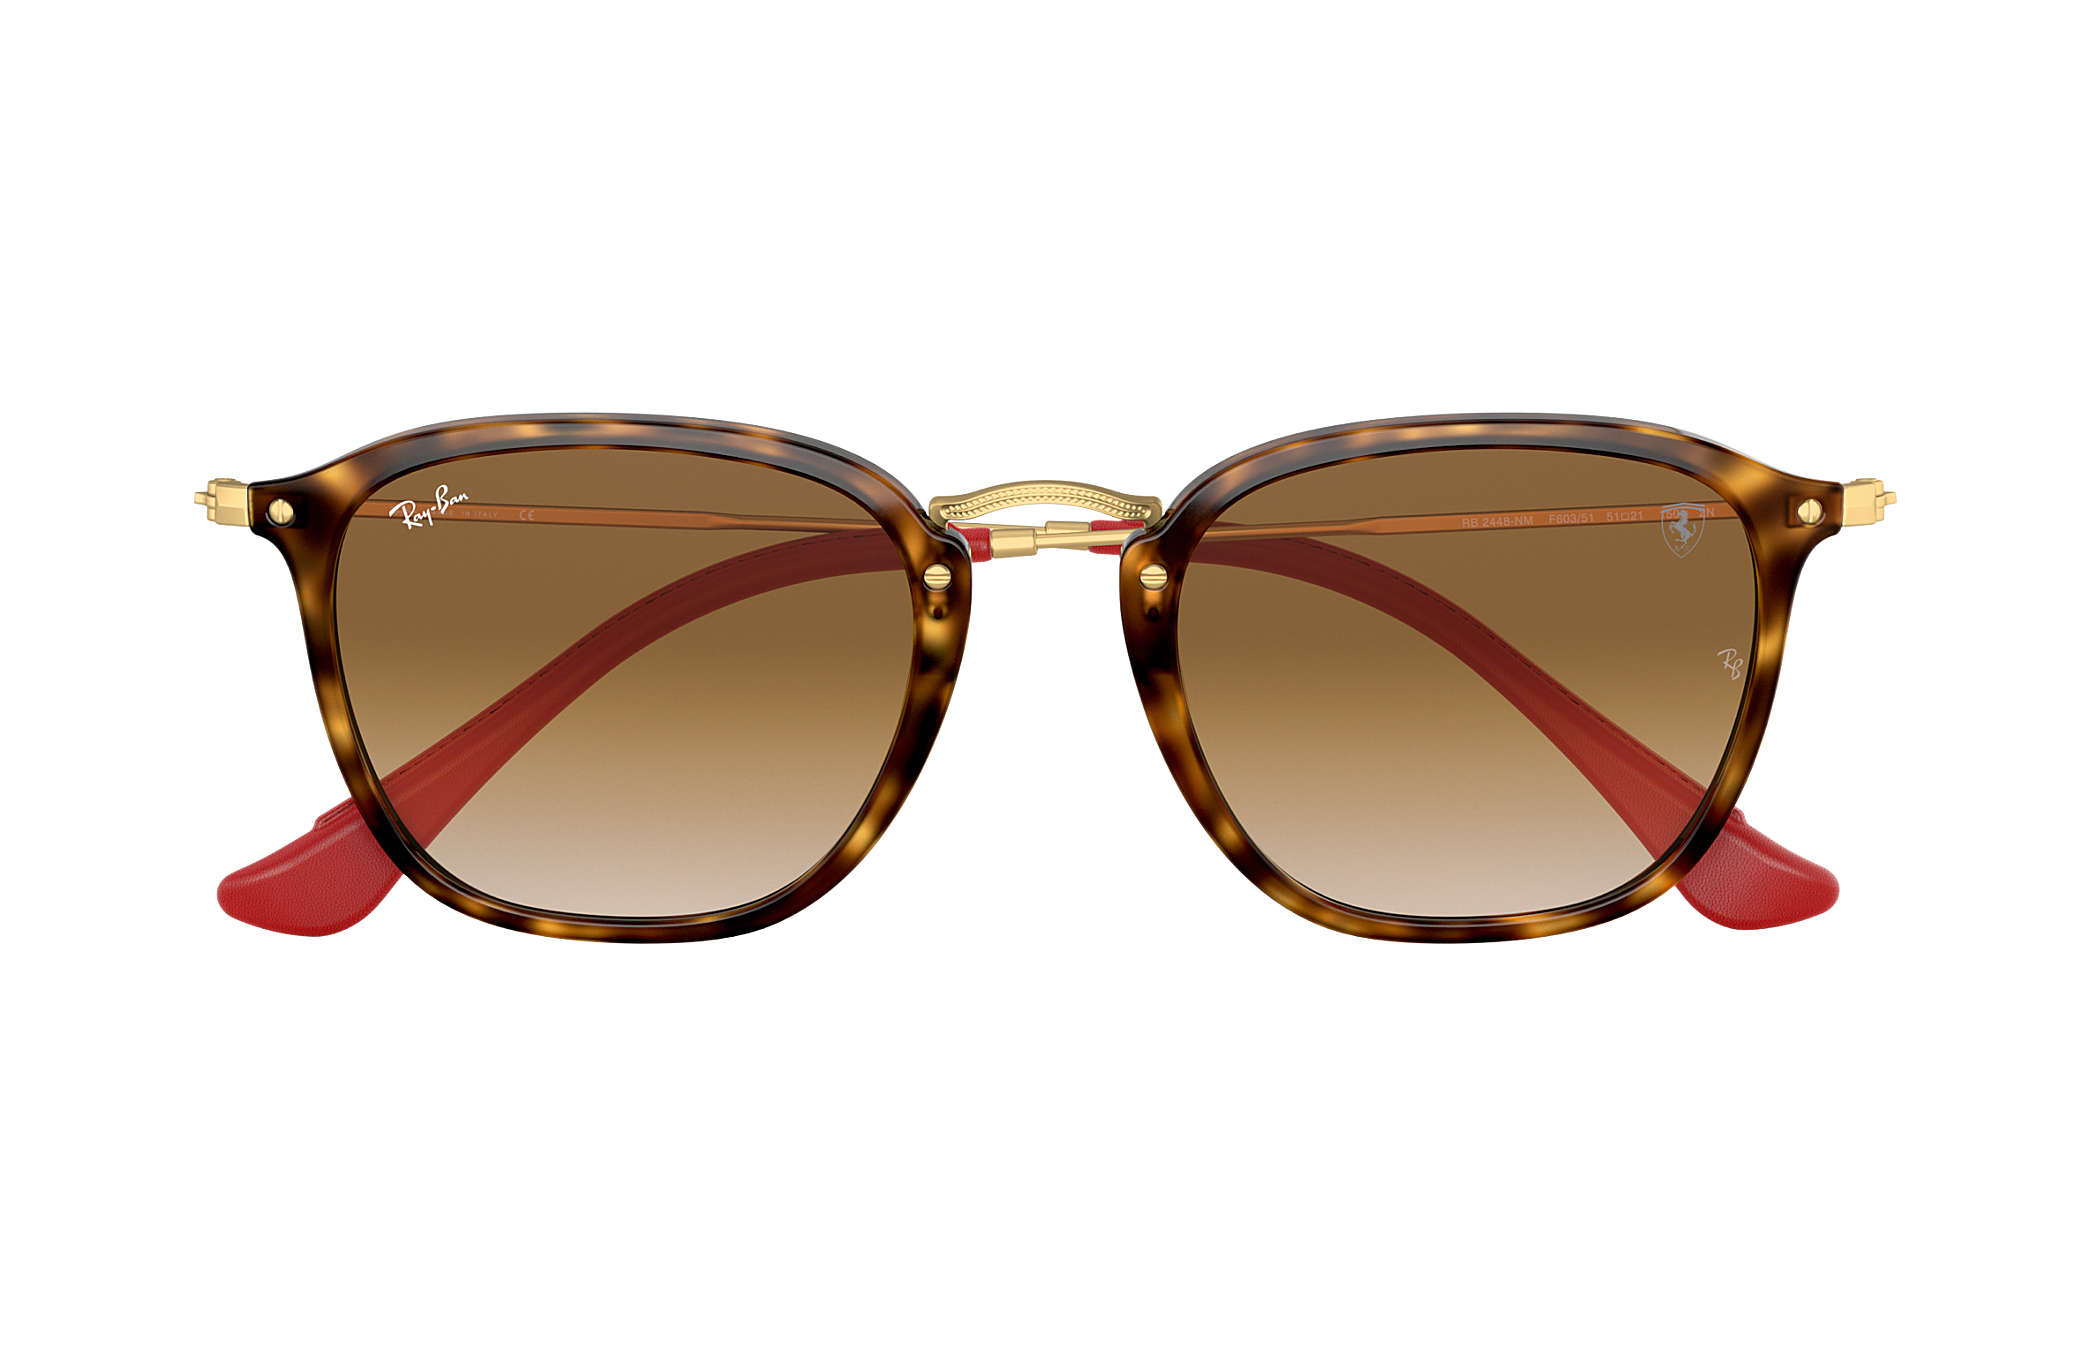 933a1f1d230a0 ... Ray-Ban 0RB2448NM-RB2448NM SCUDERIA FERRARI COLLECTION Tortoise  Gold  SUN ...